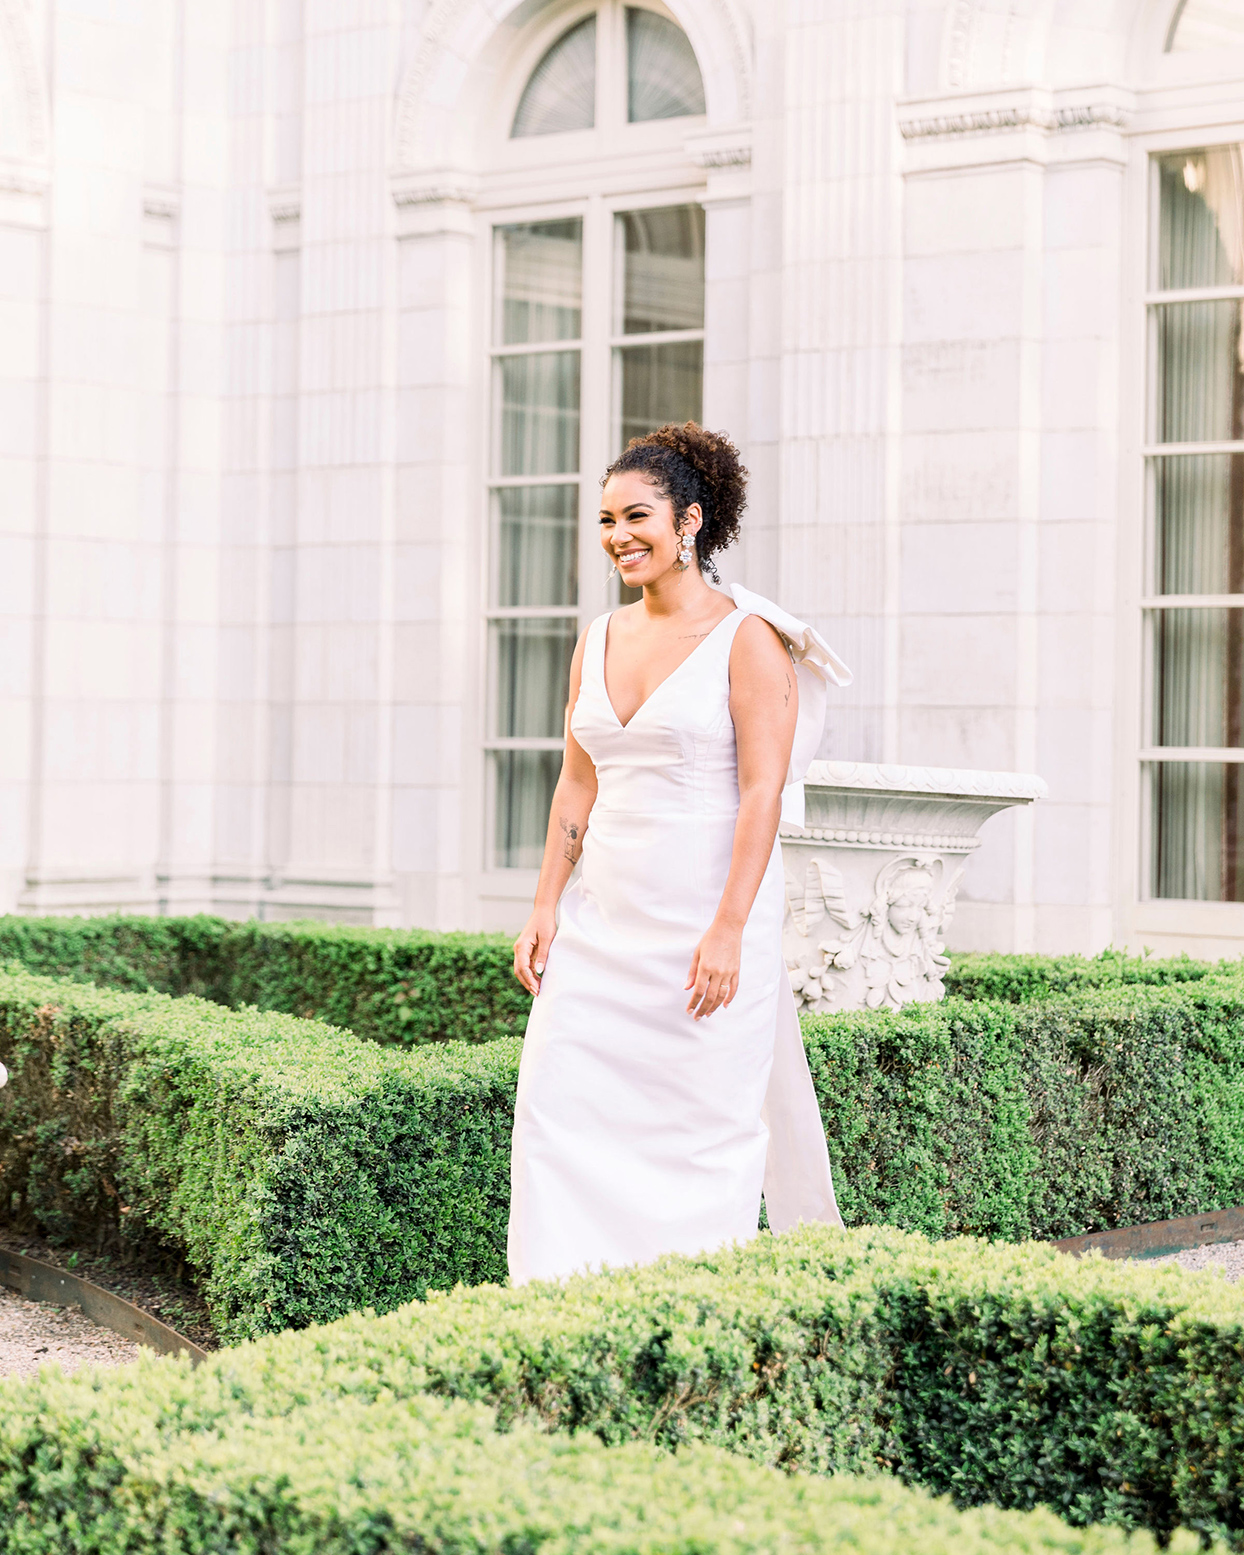 dalila elliot wedding bride dress in garden